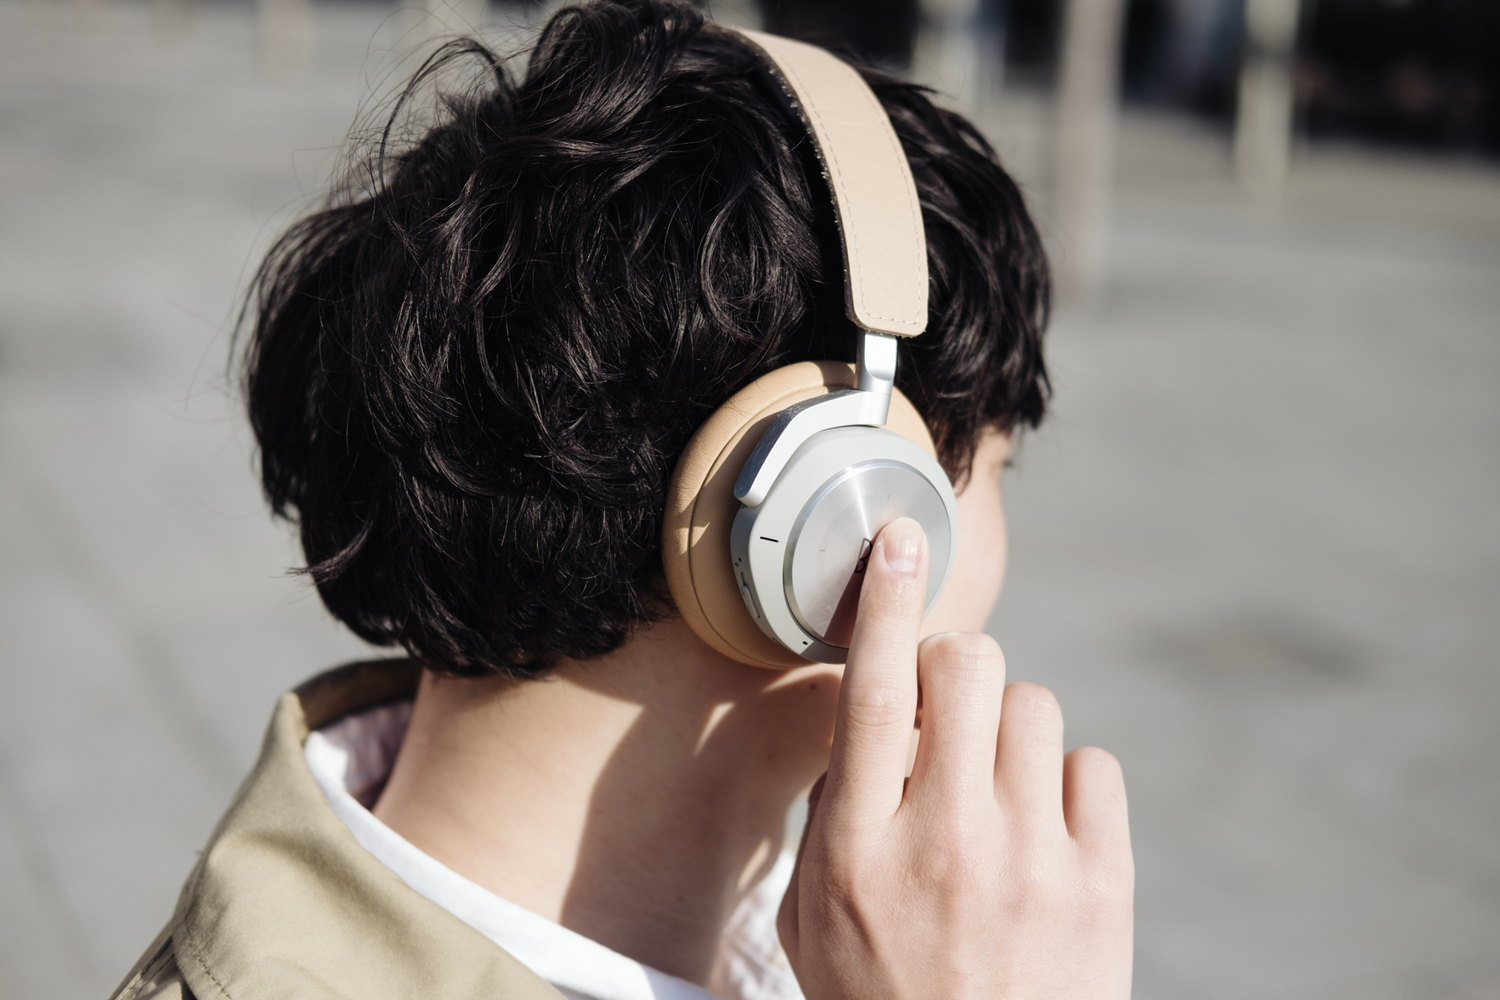 Beoplay h9i 15